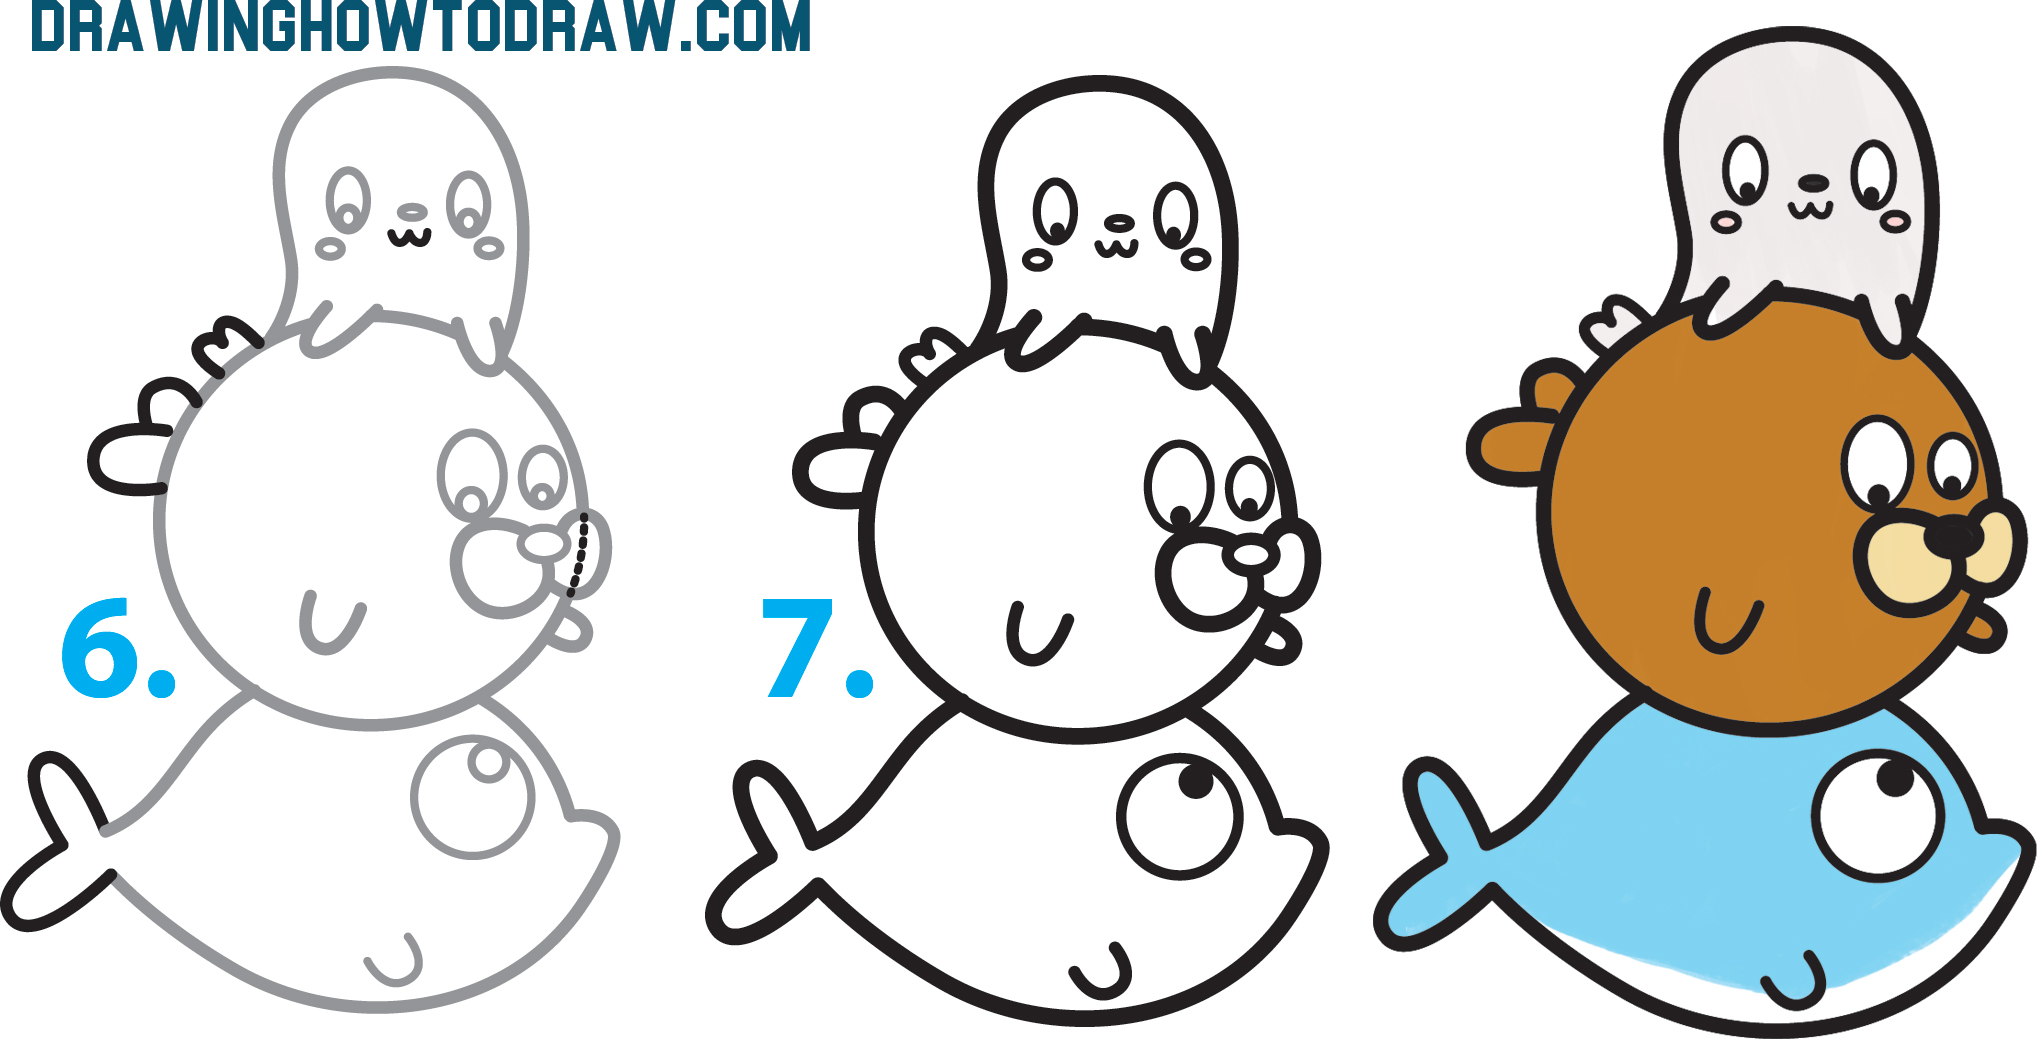 How To Draw A Walrus Step By Step